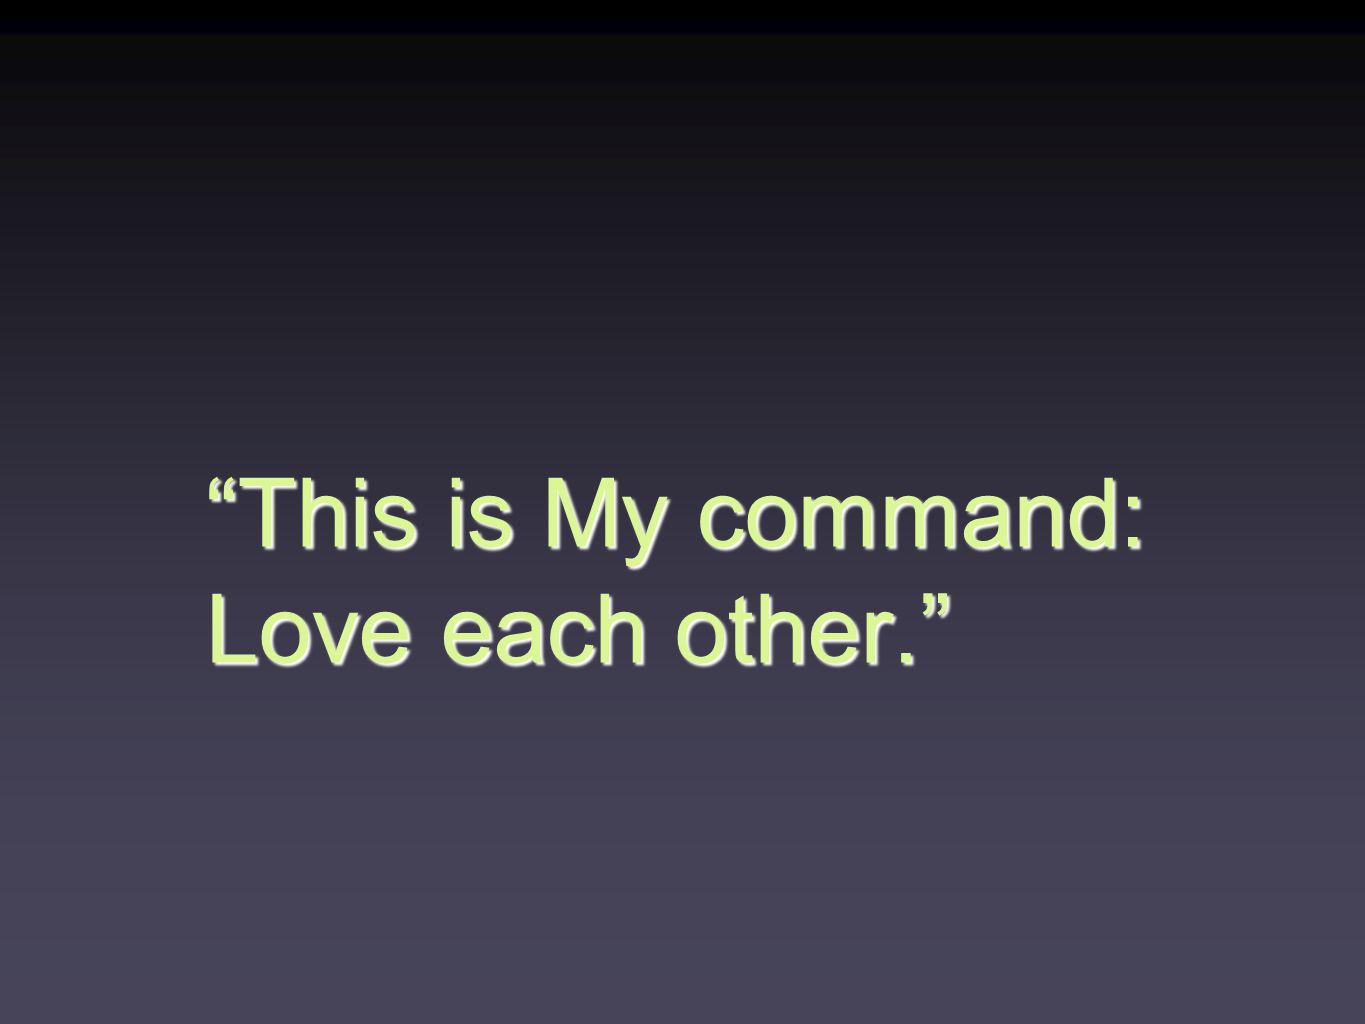 This is My command: Love each other.